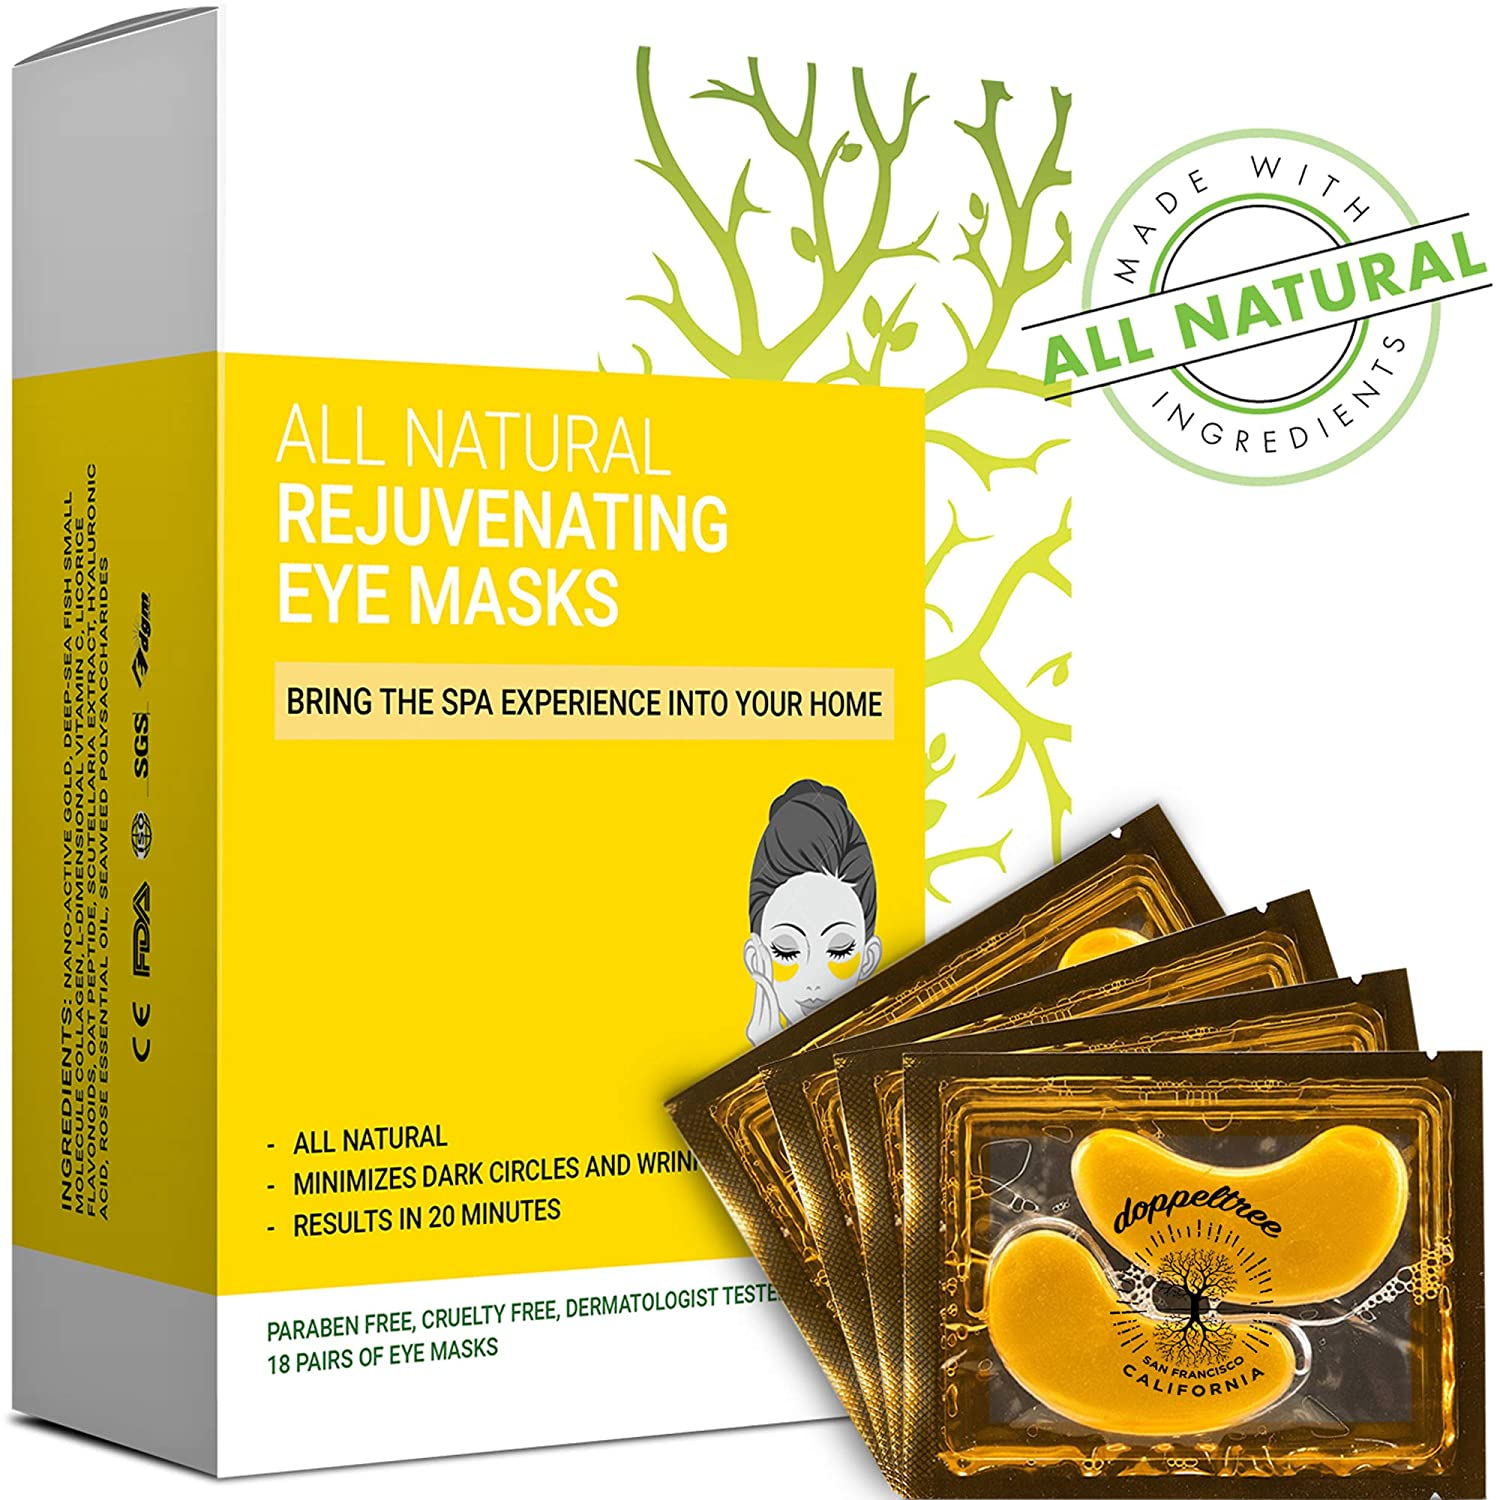 (18 pairs) All Natural Under Eye Bags Treatment Patches & Mask for Puffiness, Wrinkles and Dark Circles   24K Gold with Anti Aging Collagen, Hyaluronic Acid, Hydrogel   Designed in San Francisco Doppeltree